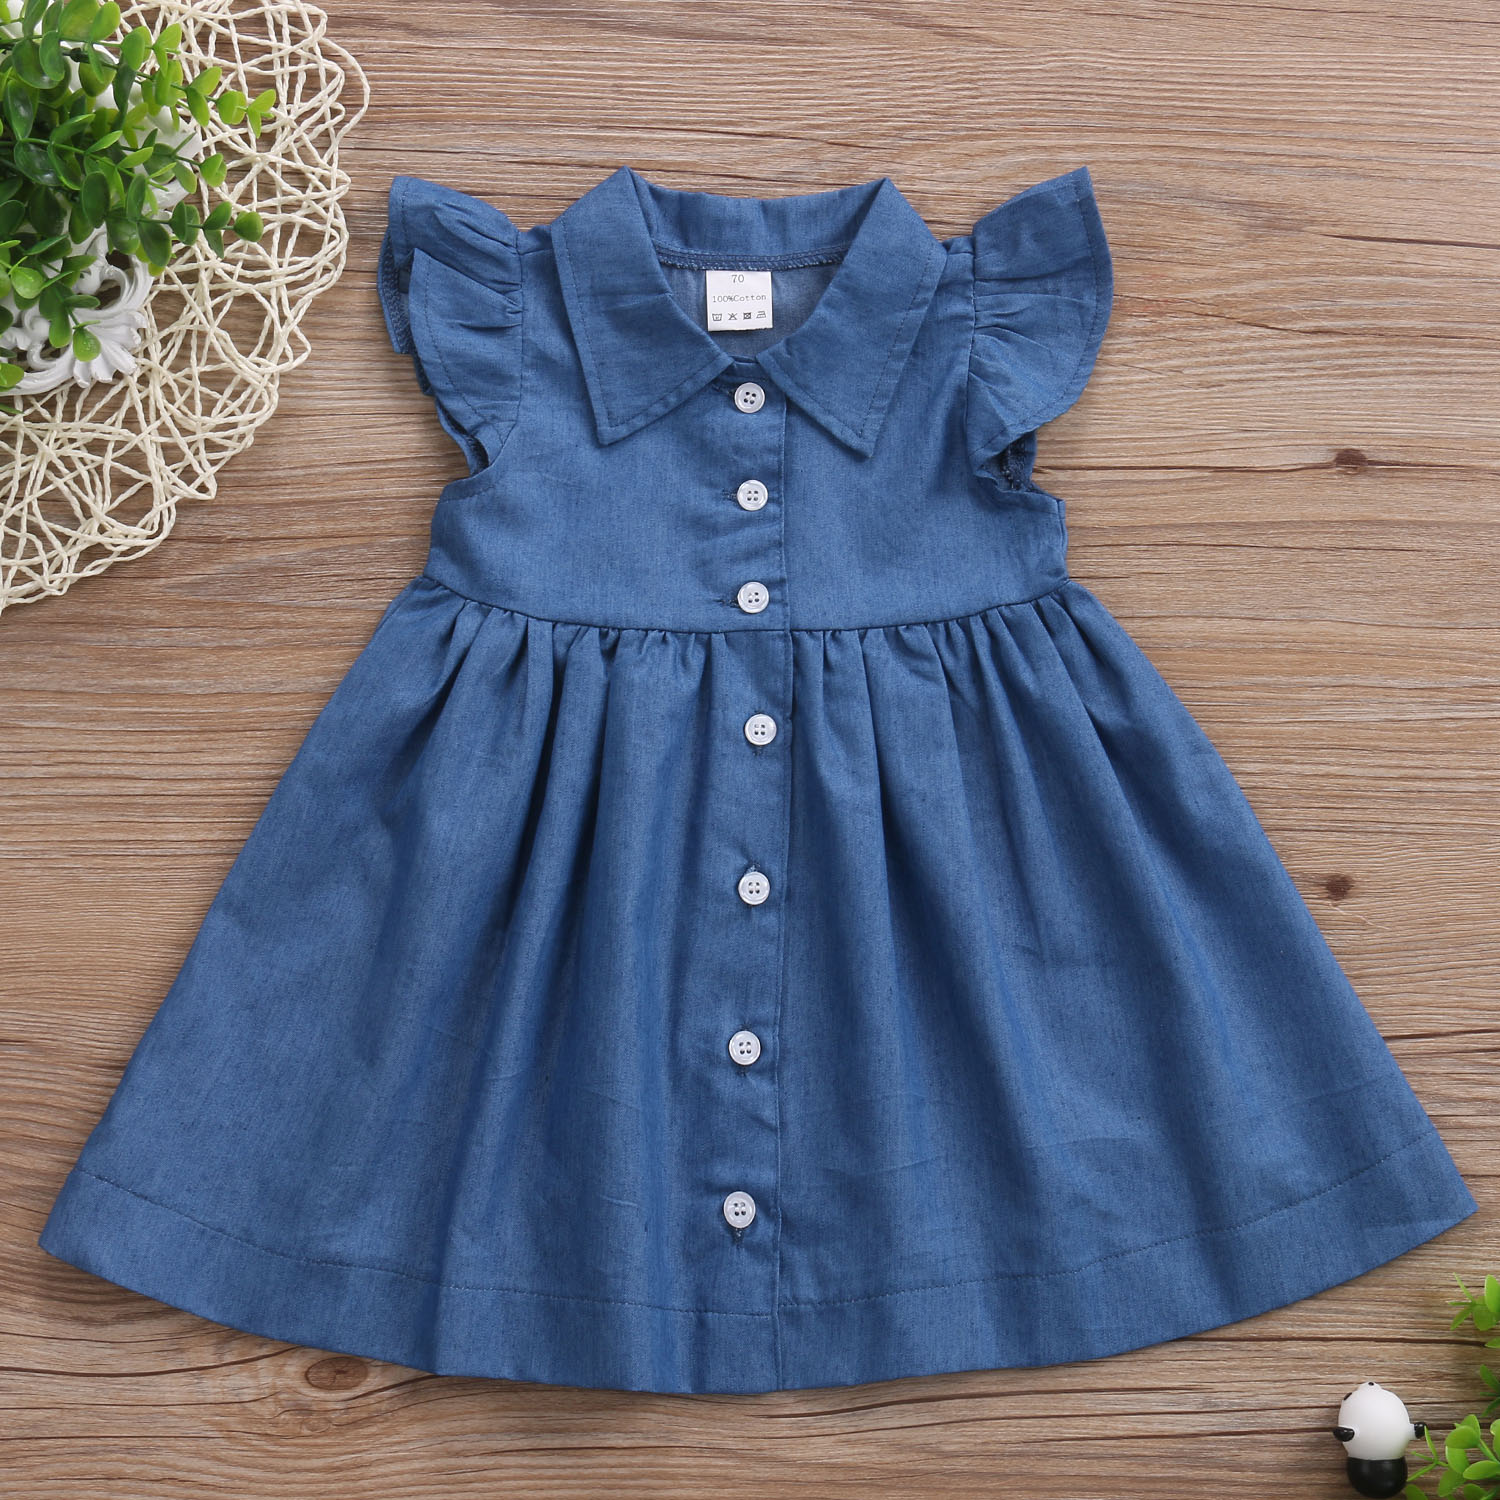 Pudcoco Denim Shirt Dress Baby Girls Buttons Up Denim Dress For